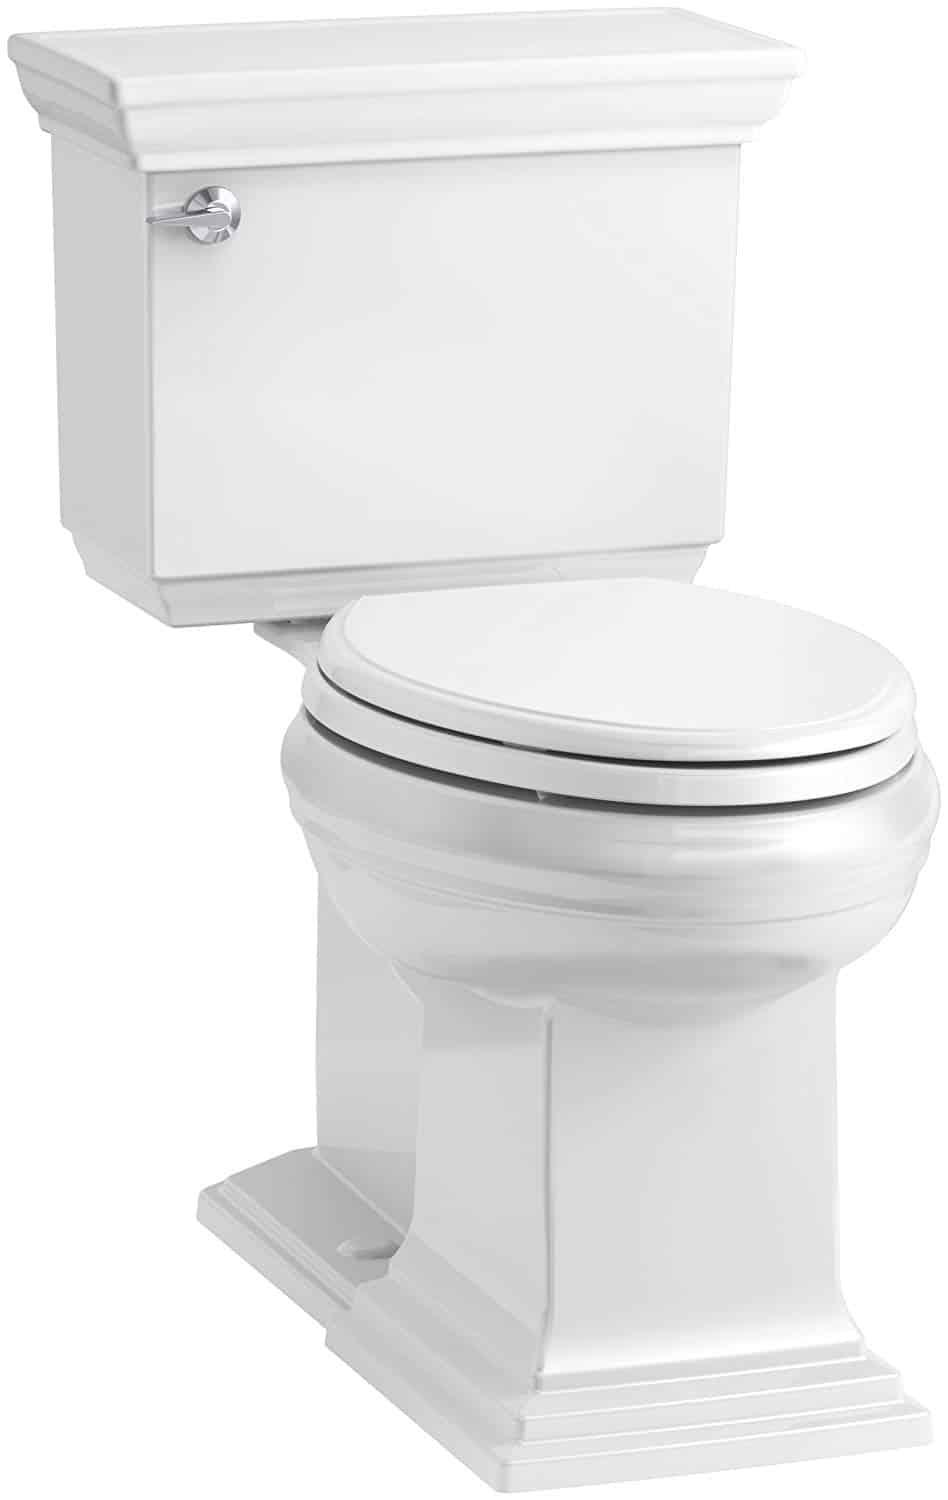 KOHLER K-6669-0 MEMOIR STATELY COMFORT HEIGHT ALONG GATED 1.2 8GPF TOILET